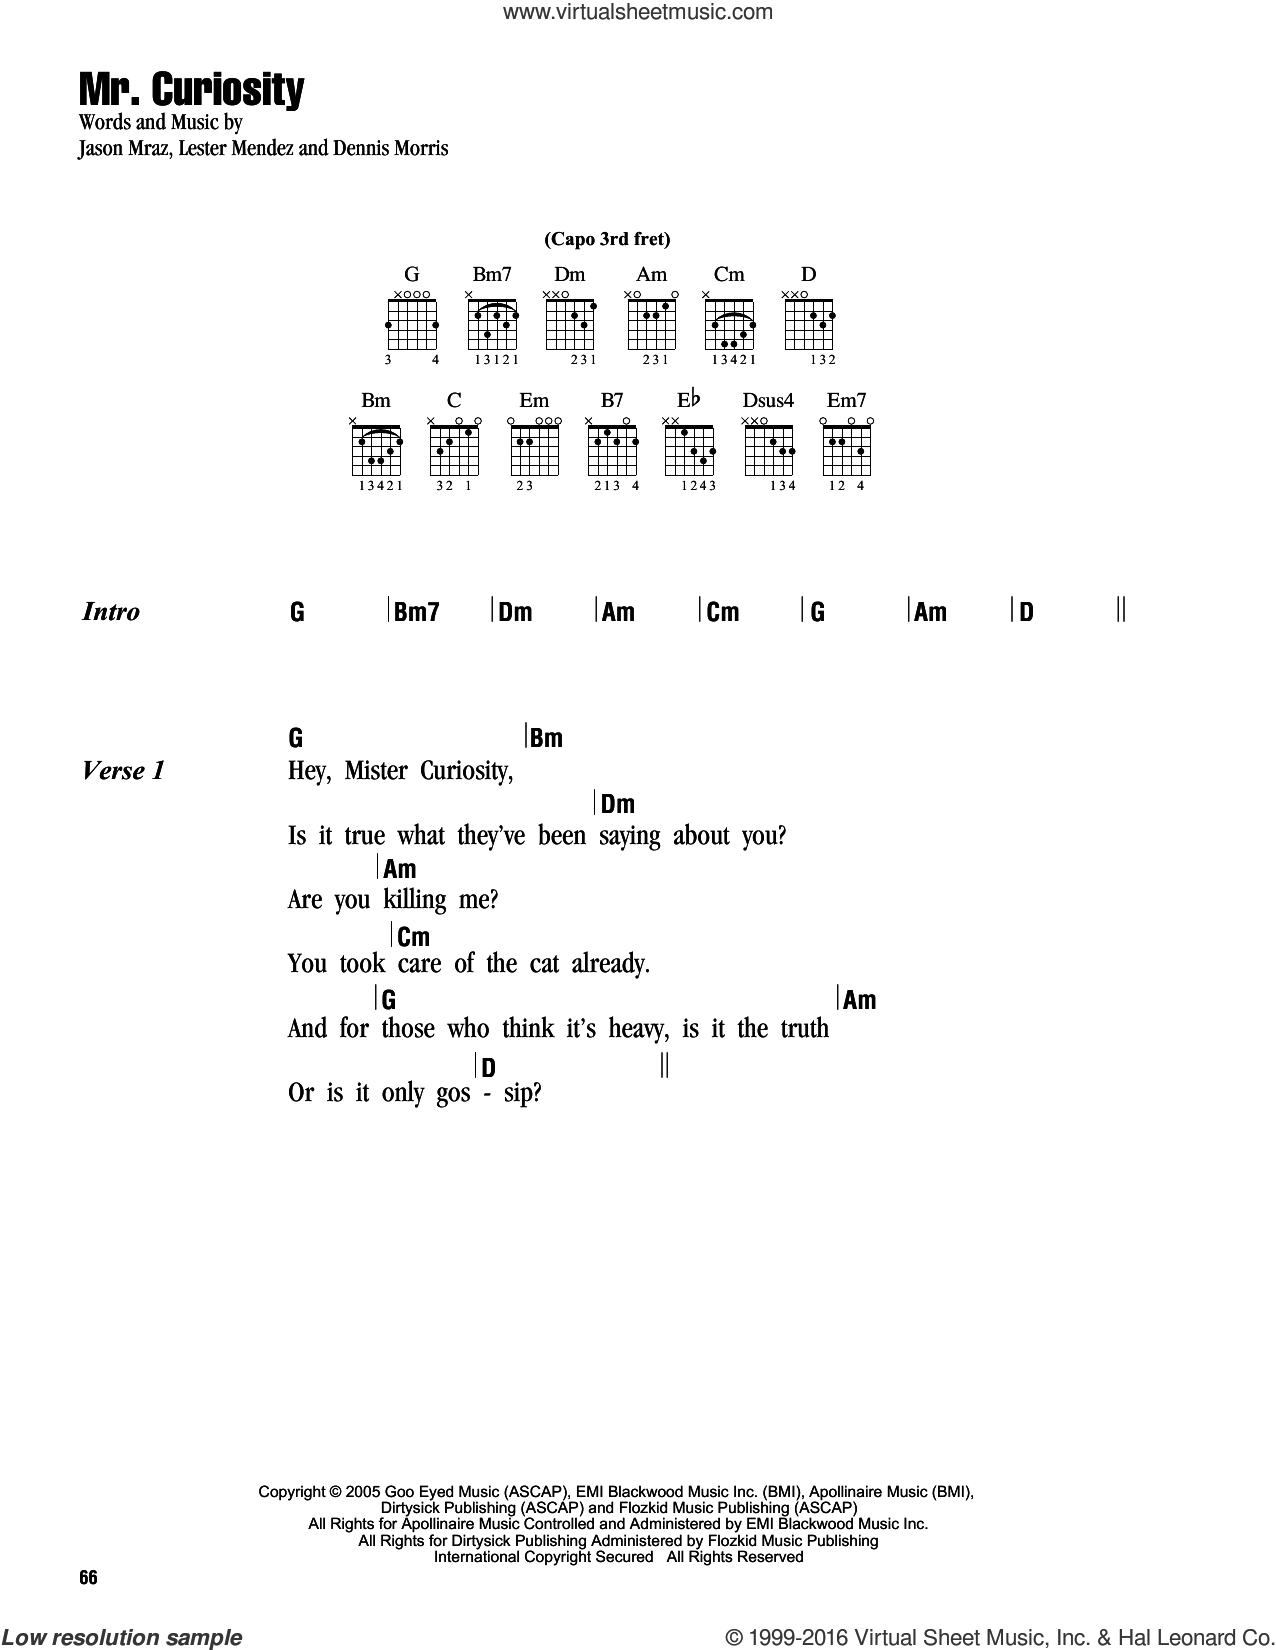 Mr. Curiosity sheet music for guitar (chords) by Lester Mendez